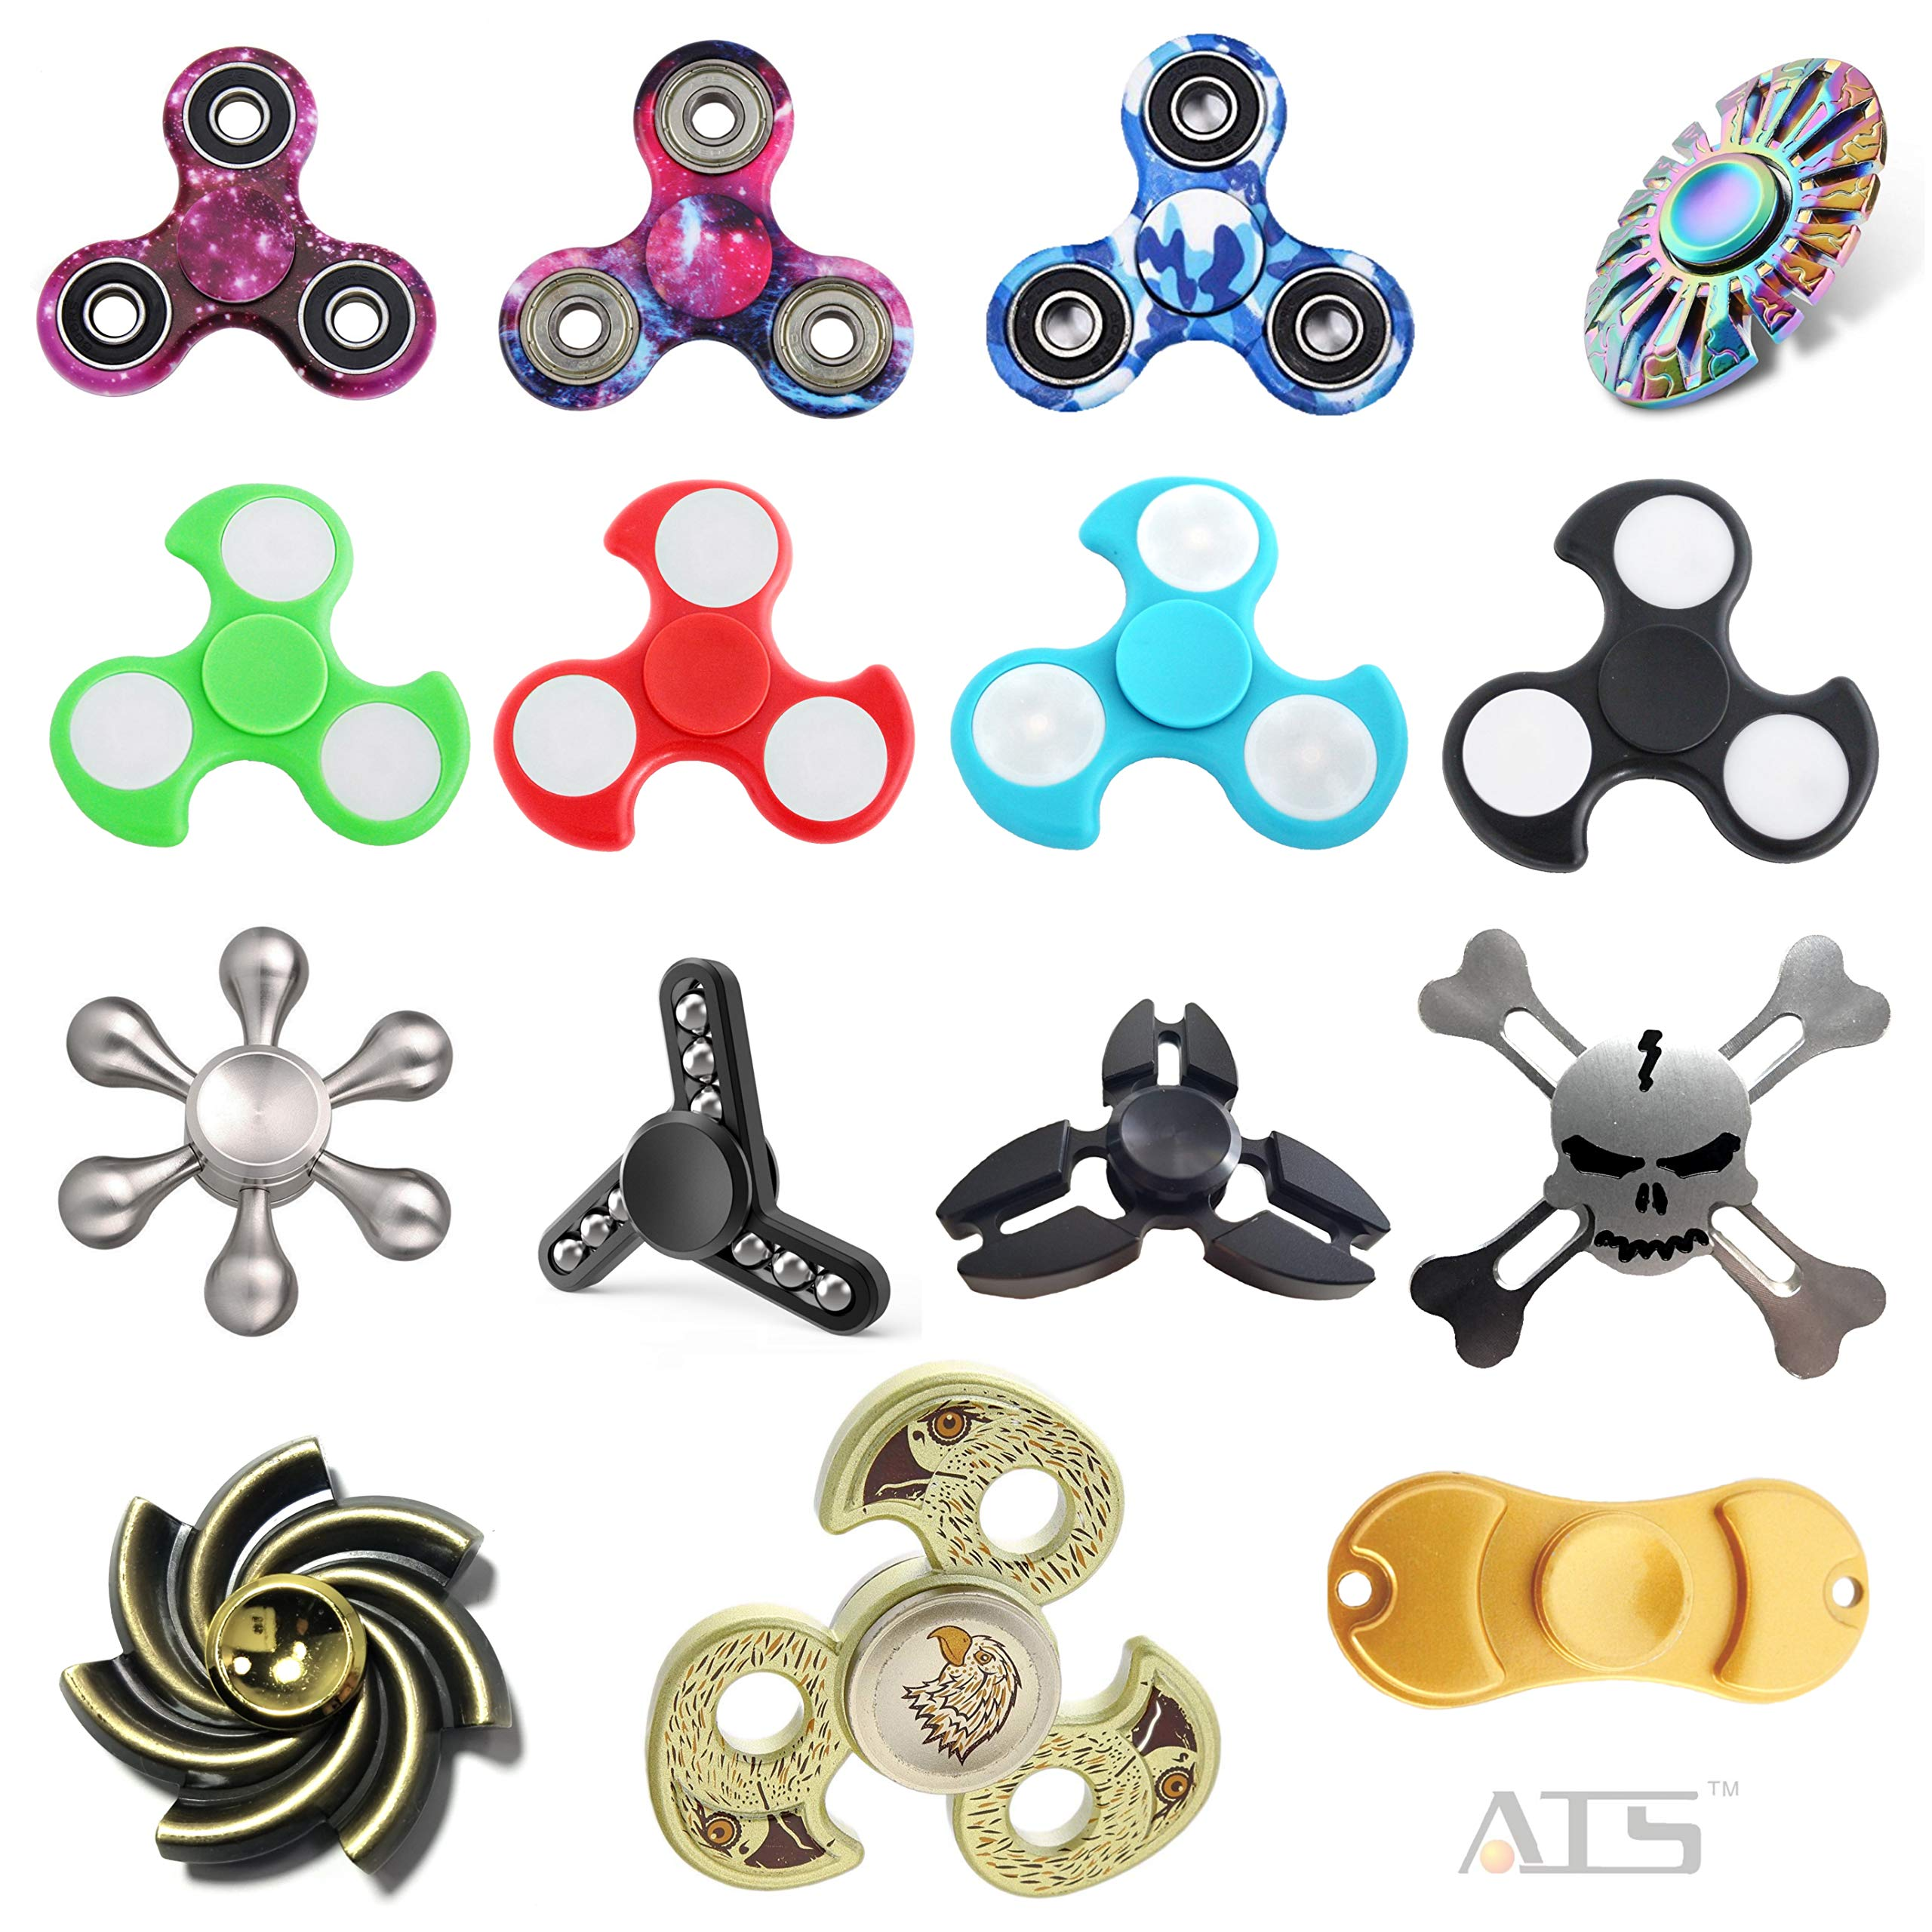 ATS 15-Pack Assorted Combo Fidget Spinners | Colors May Vary | 15 pcs Mixed Hand Spinners Bundle | Perfect Finger Toys for Stress Relief, Anxiety, Autism, ADHD | Great Present for Adults Kids by ATS (Image #1)